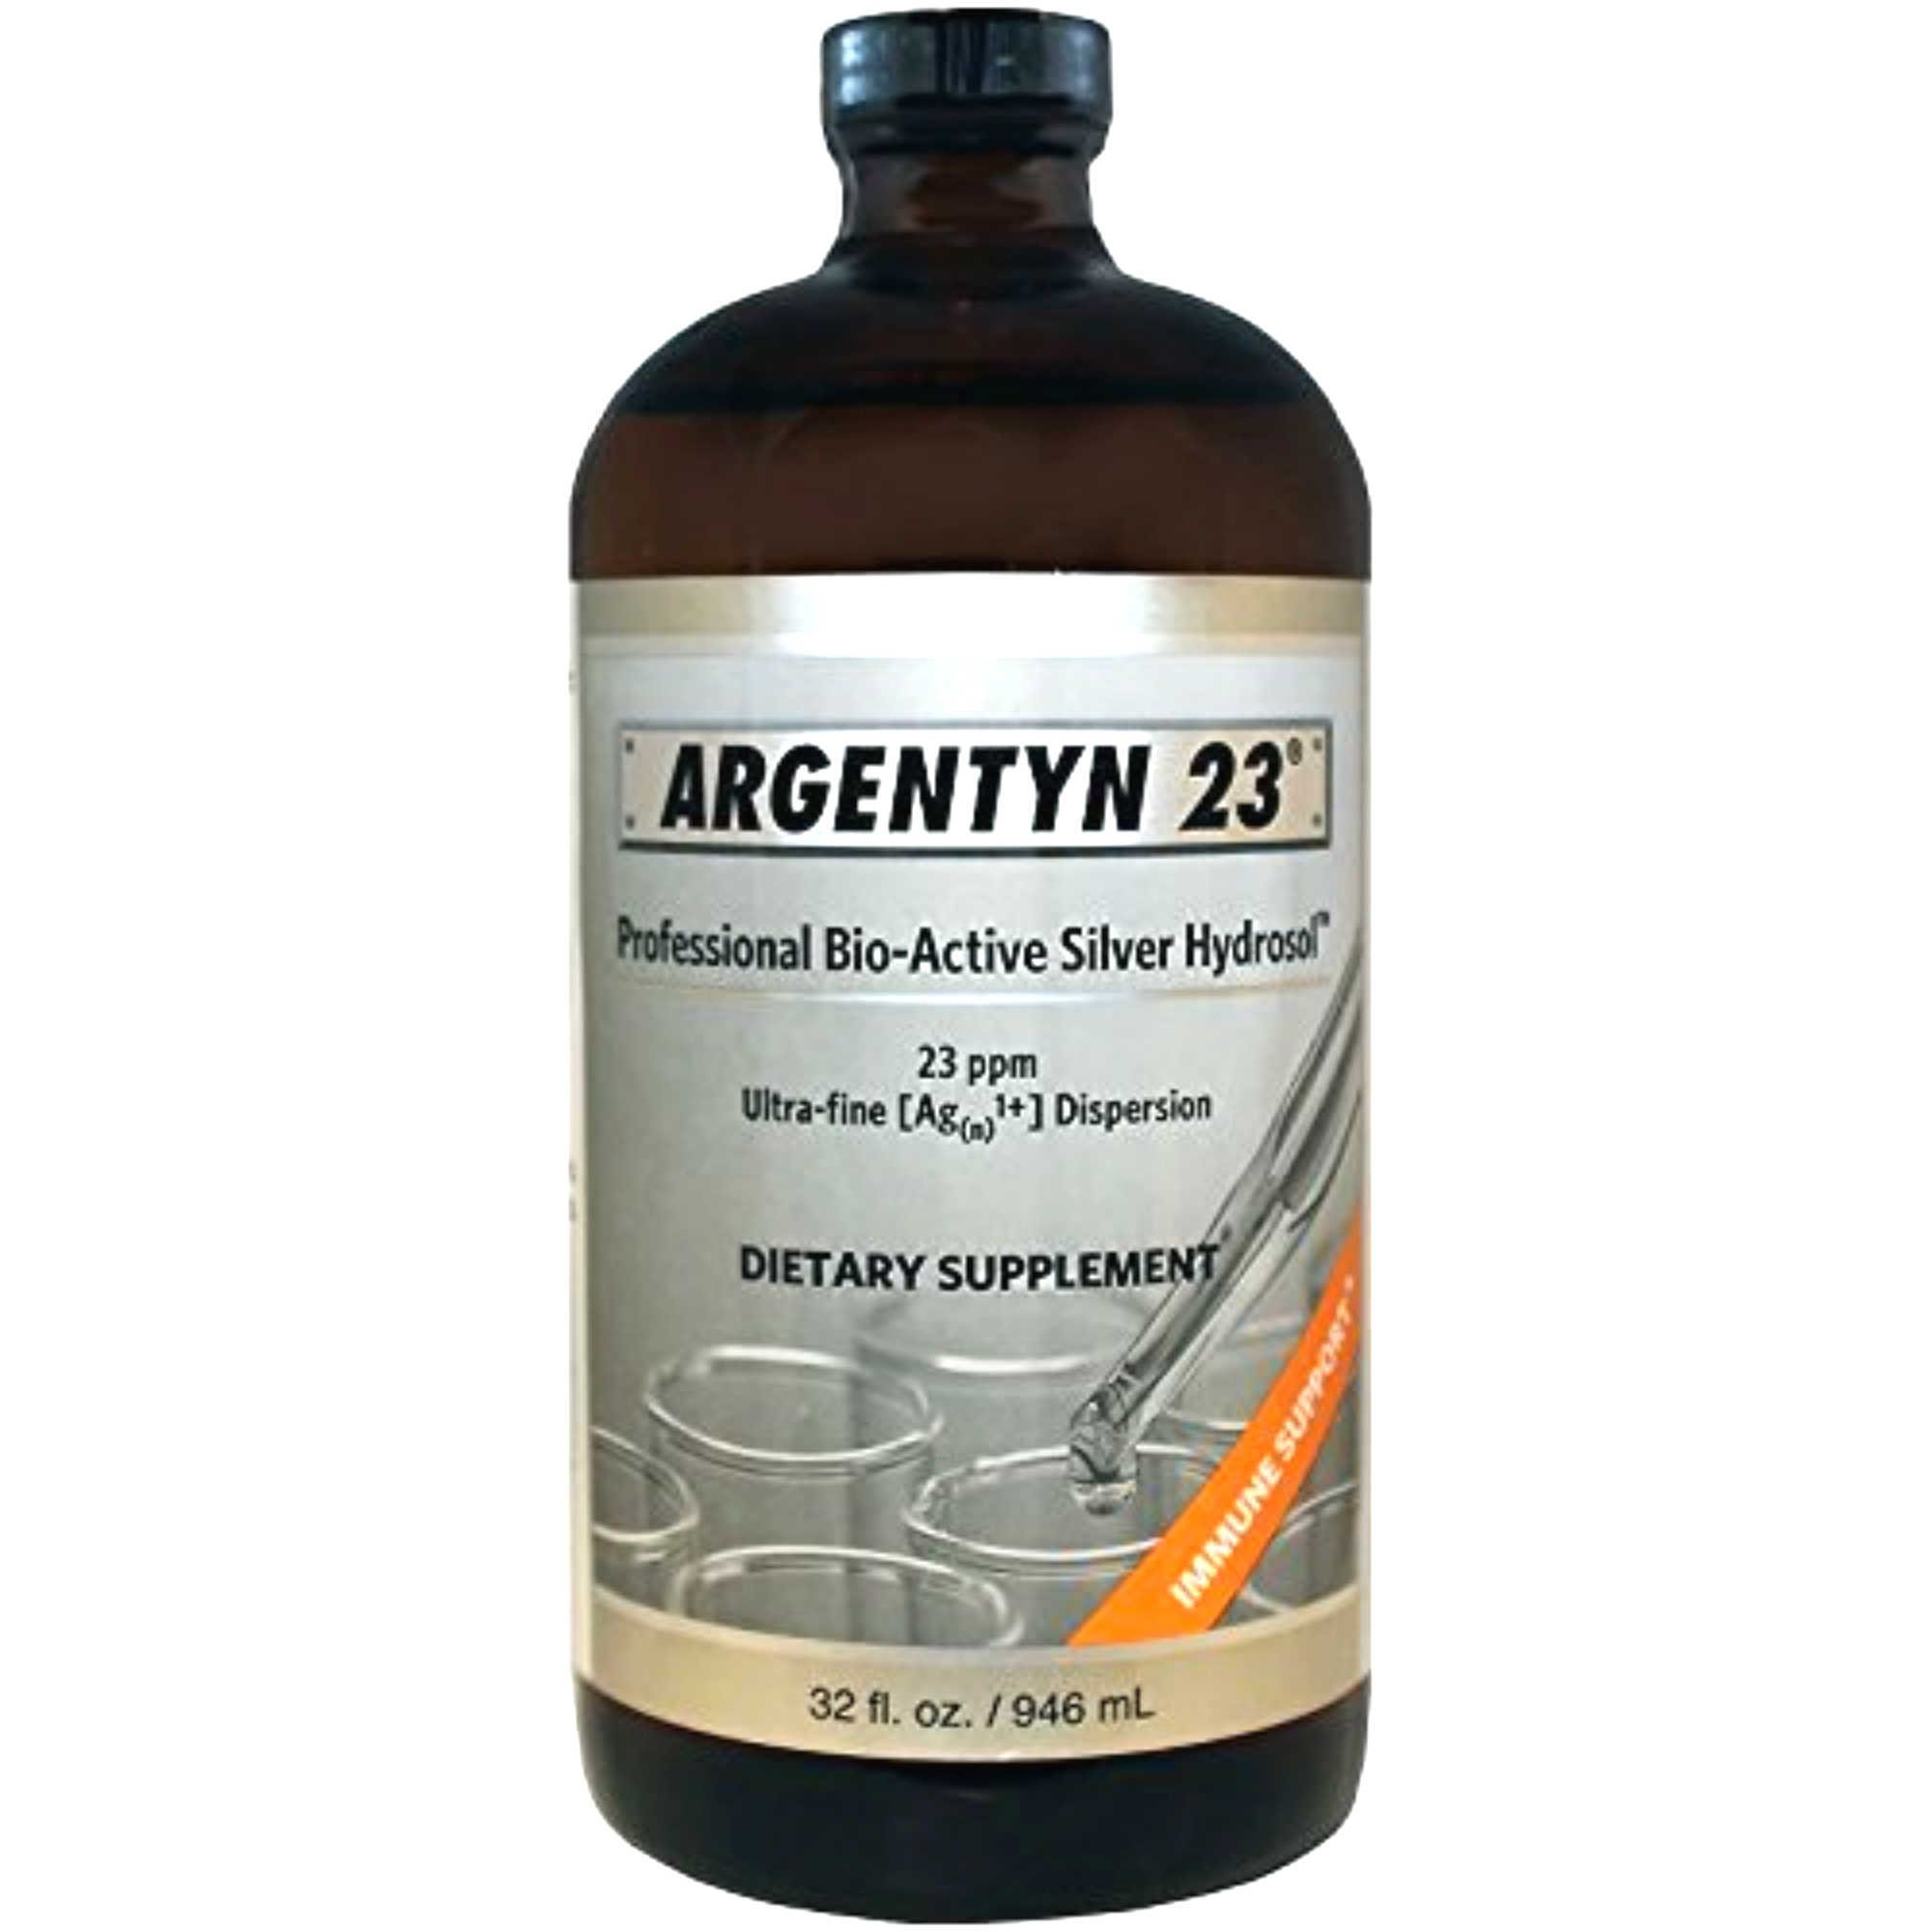 Argentyn 23 PPM Colloidal Silver Hydrosol (32 oz Value Bottle) by N-icorp